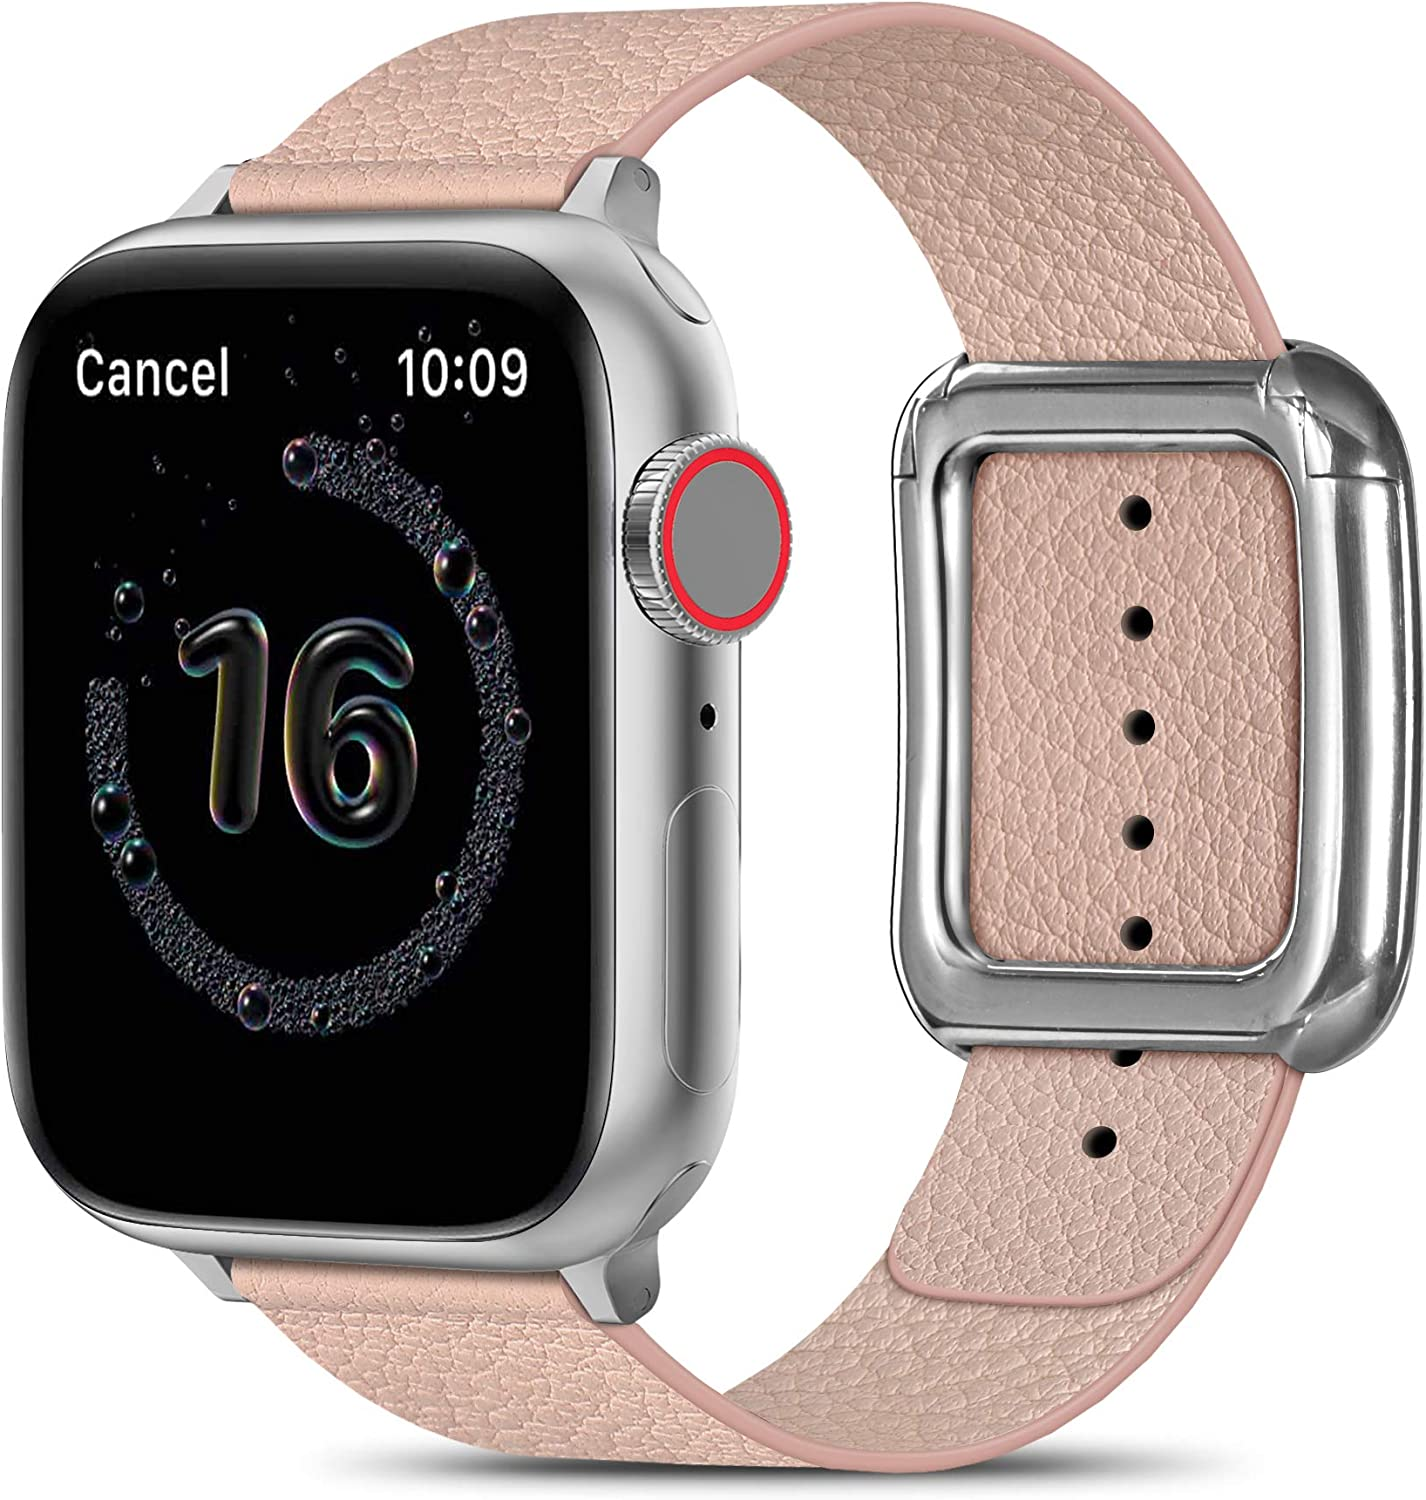 MARGE PLUS Compatible with Apple Watch Bands SE Series 6 5 4 40mm 44mm / Series 3 2 1 38mm 42mm for Men Women, Soft Leather Replacement with Magnetic Clasp for Apple Watch Band - Pink/Silver